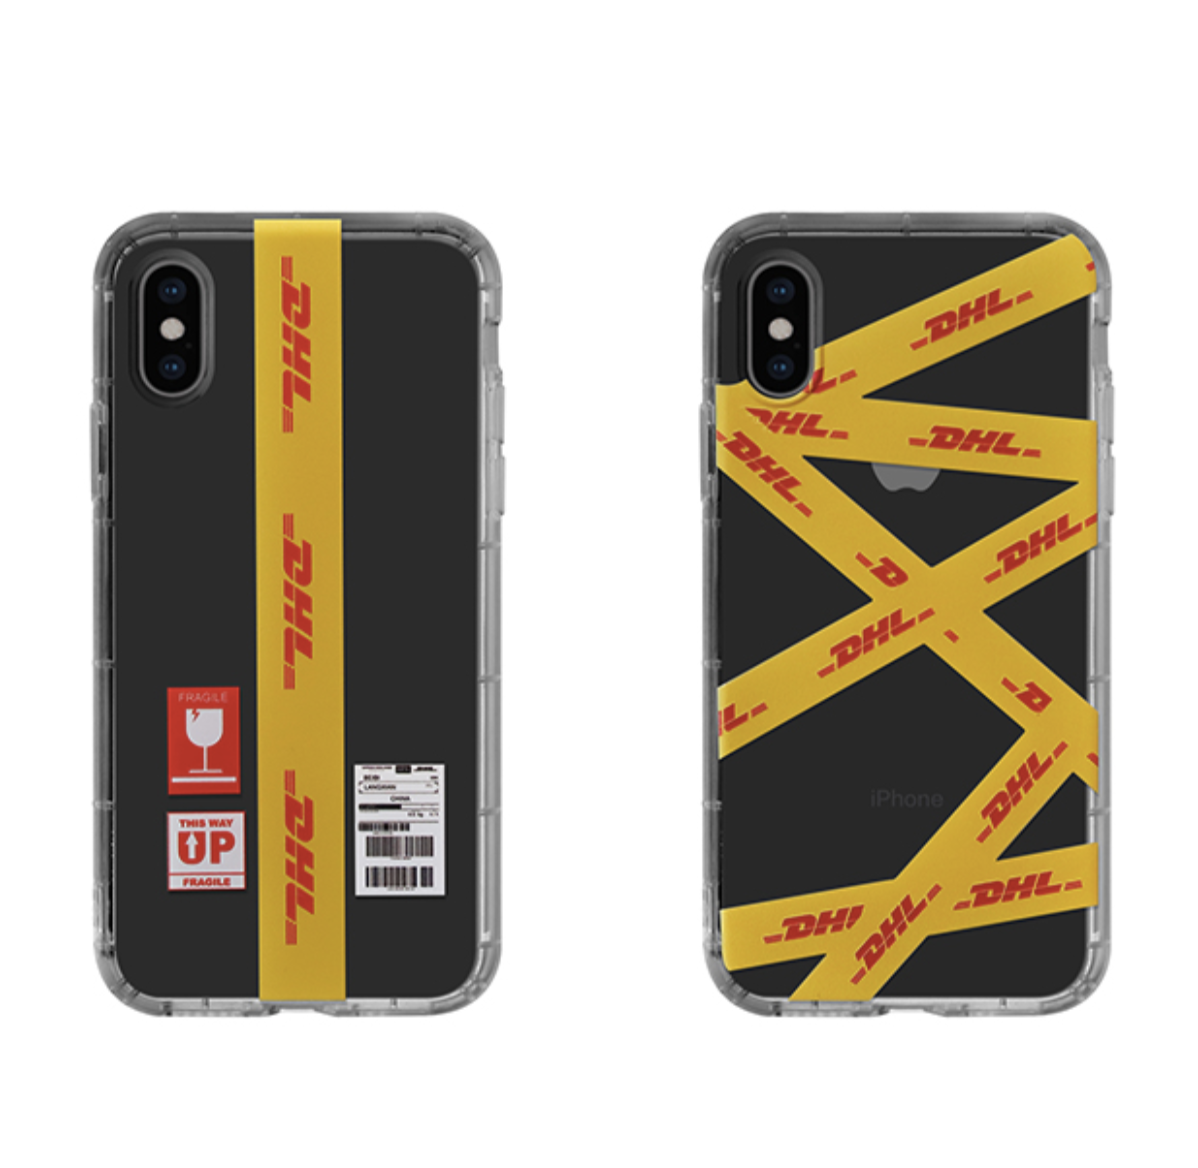 iphone 7 dhl case